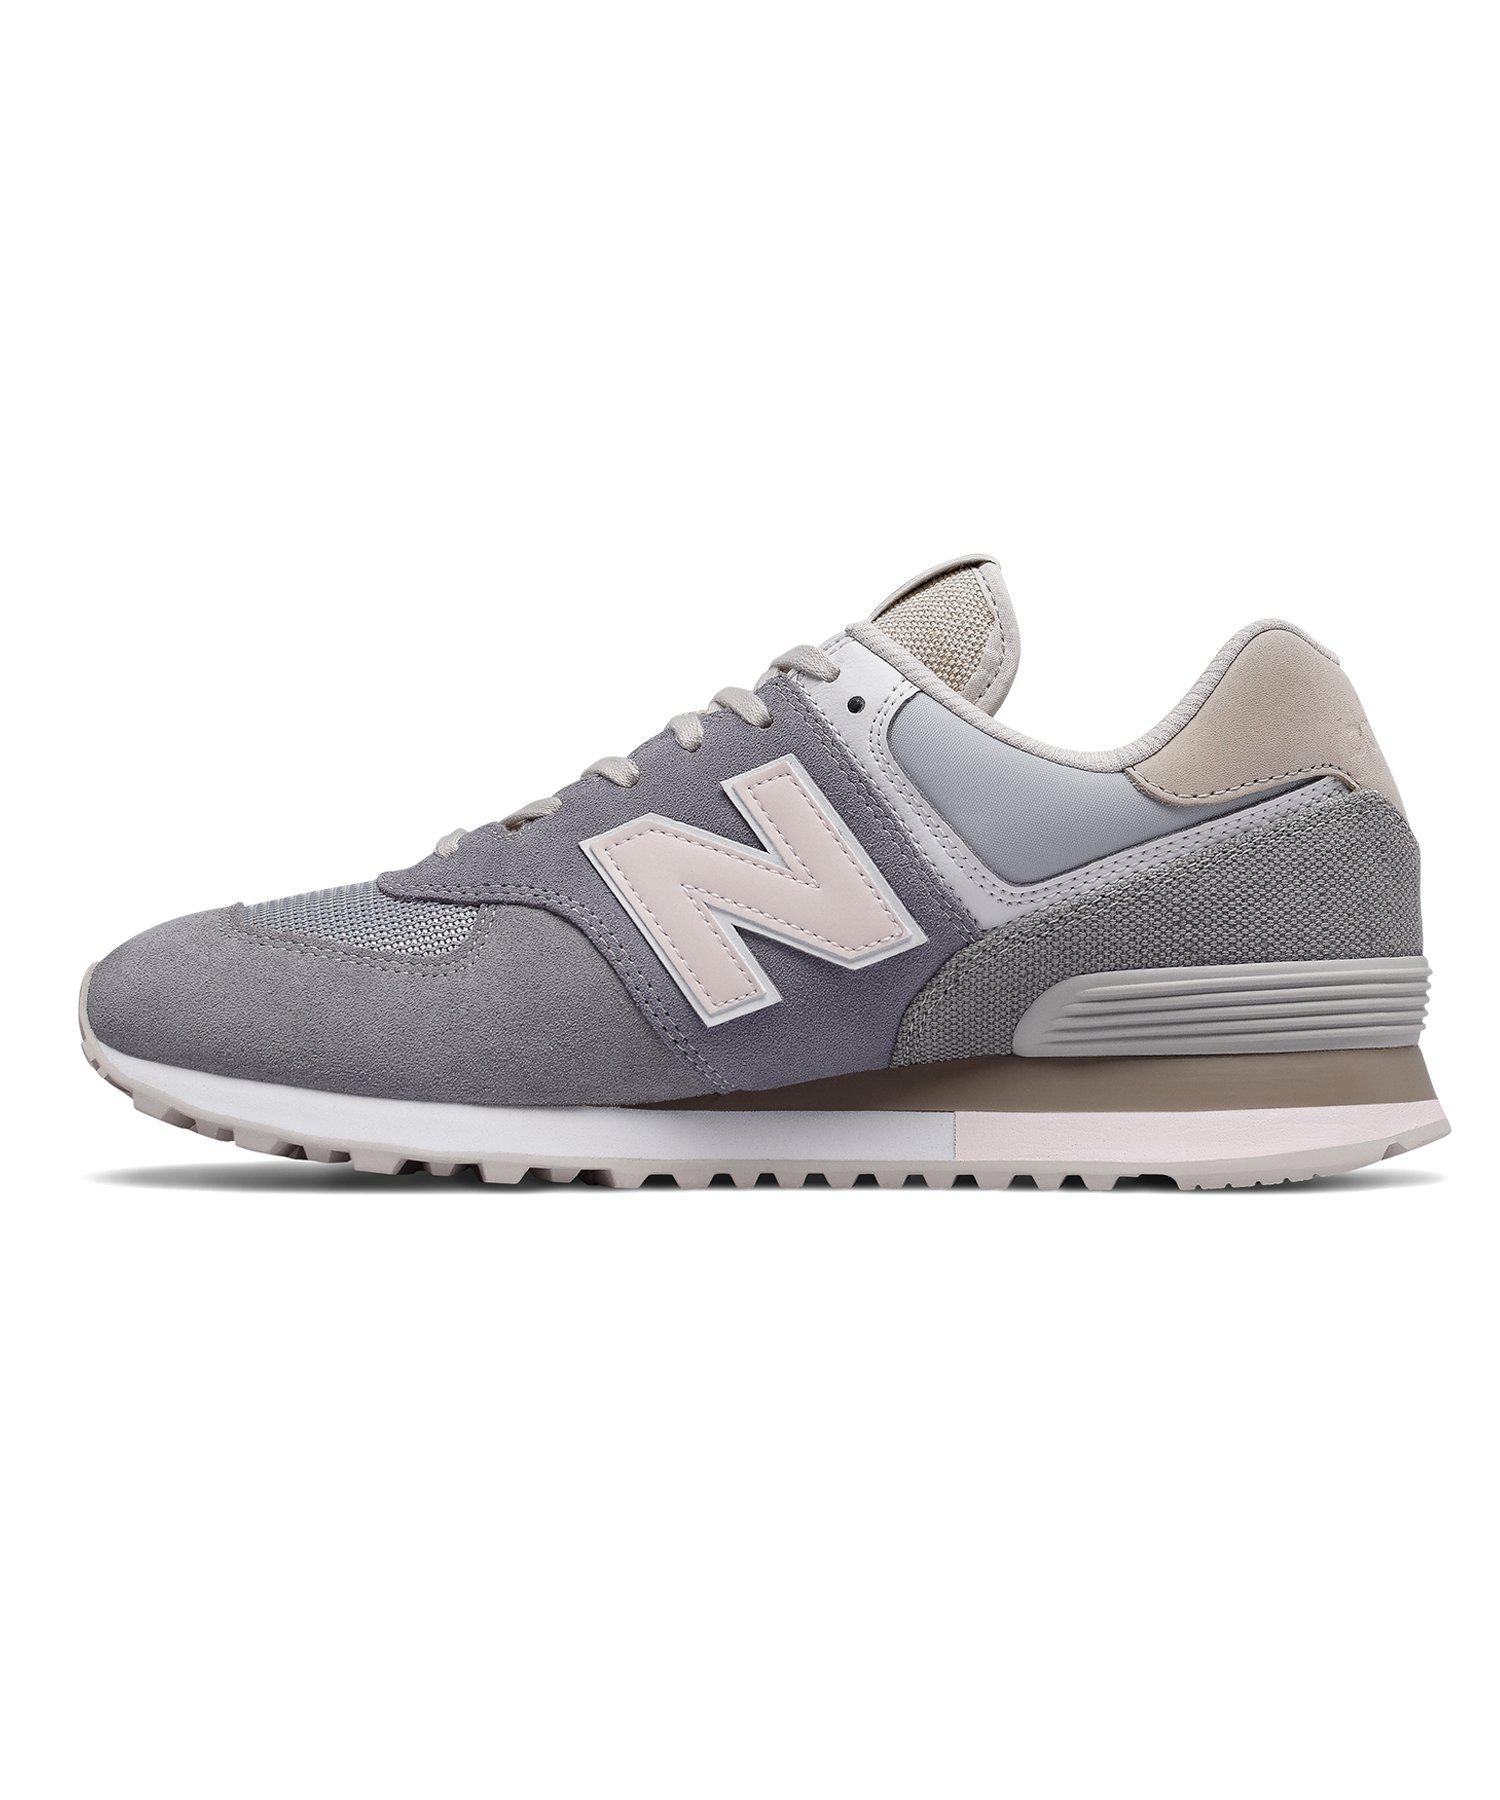 3969b8fe8c New Balance 574 Retro Surf In Grey in Gray for Men - Lyst